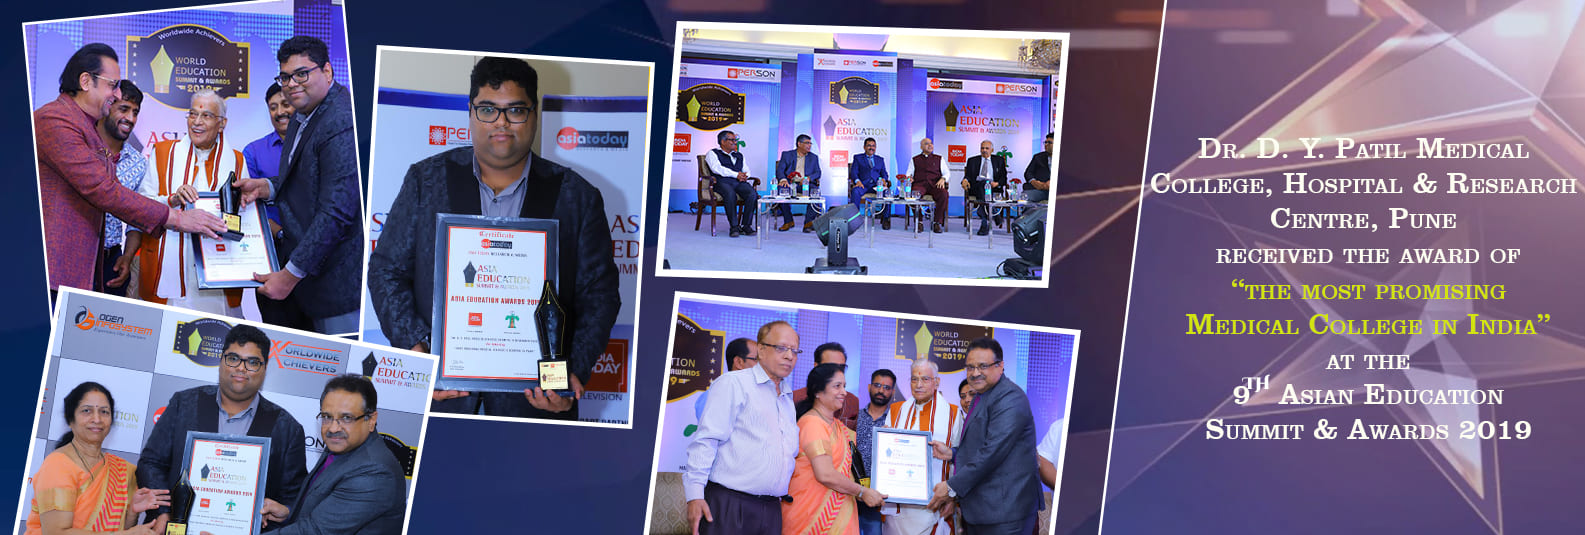 The most promising Medical College in India award - 2019 Delhi